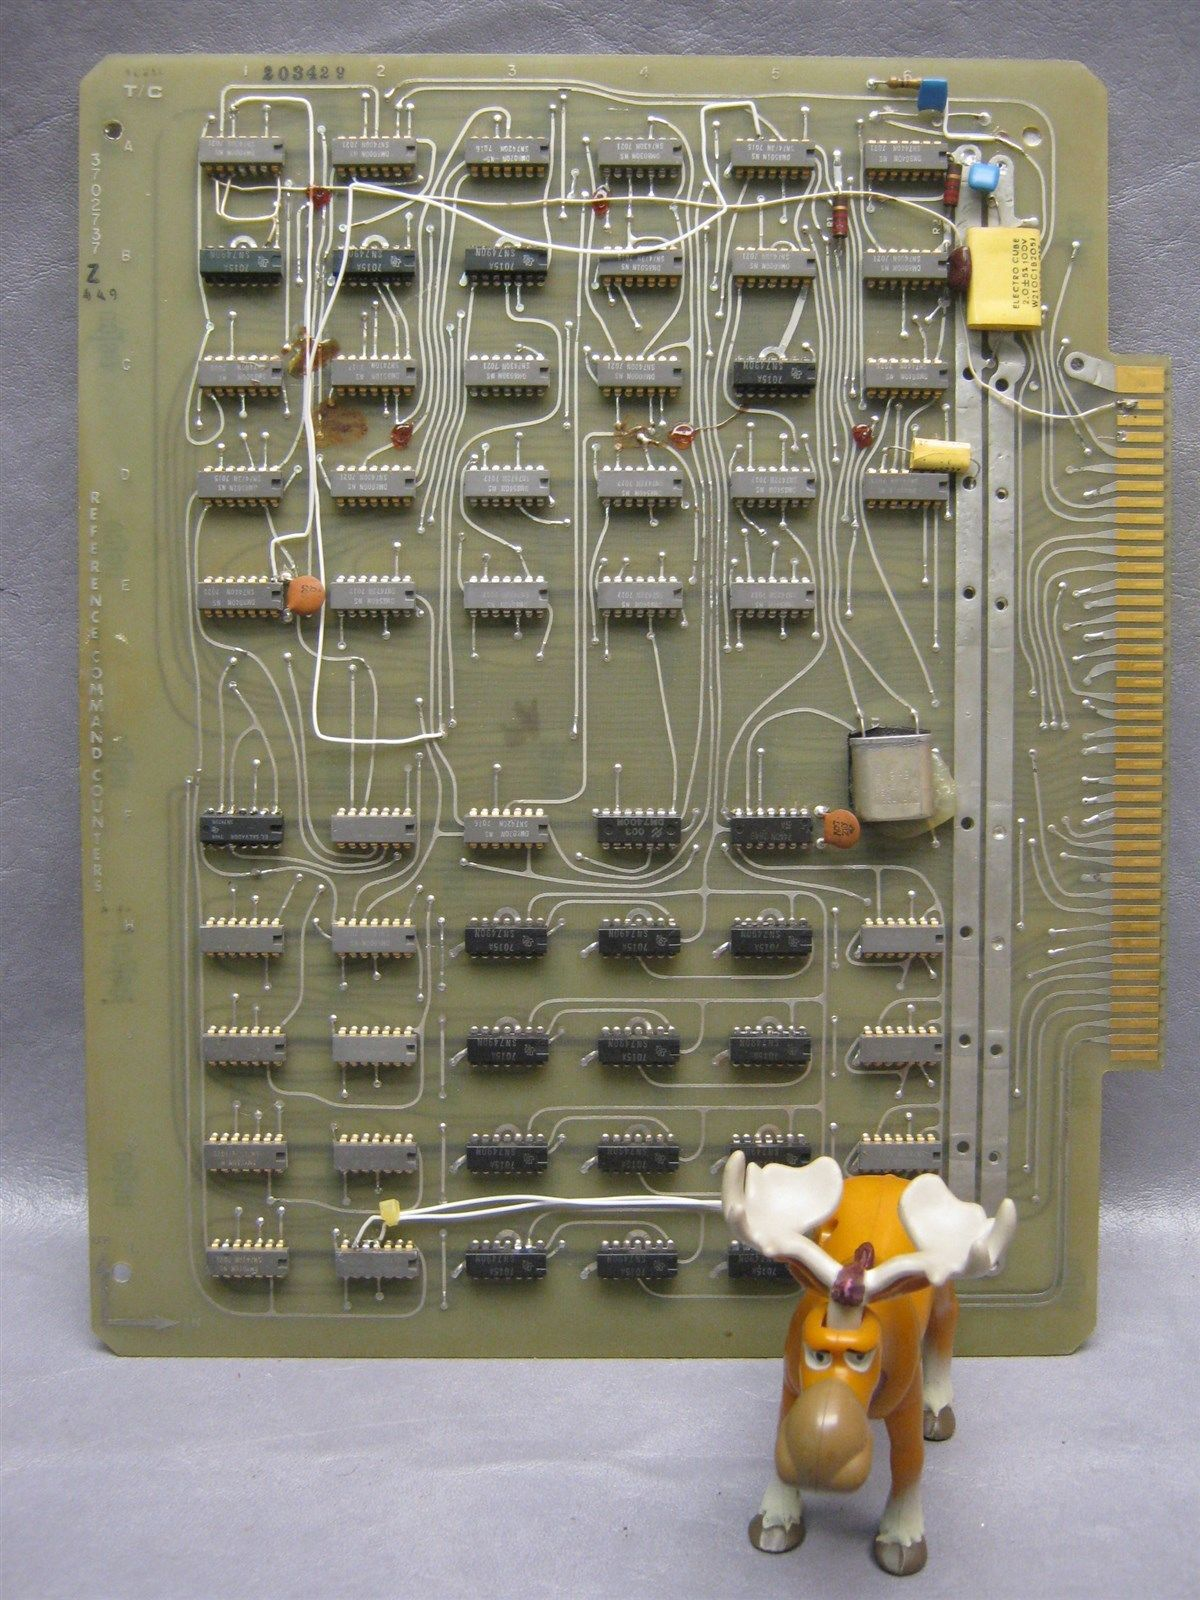 Primary image for Bendix 3702737 Reference Command Counters PCB (used)